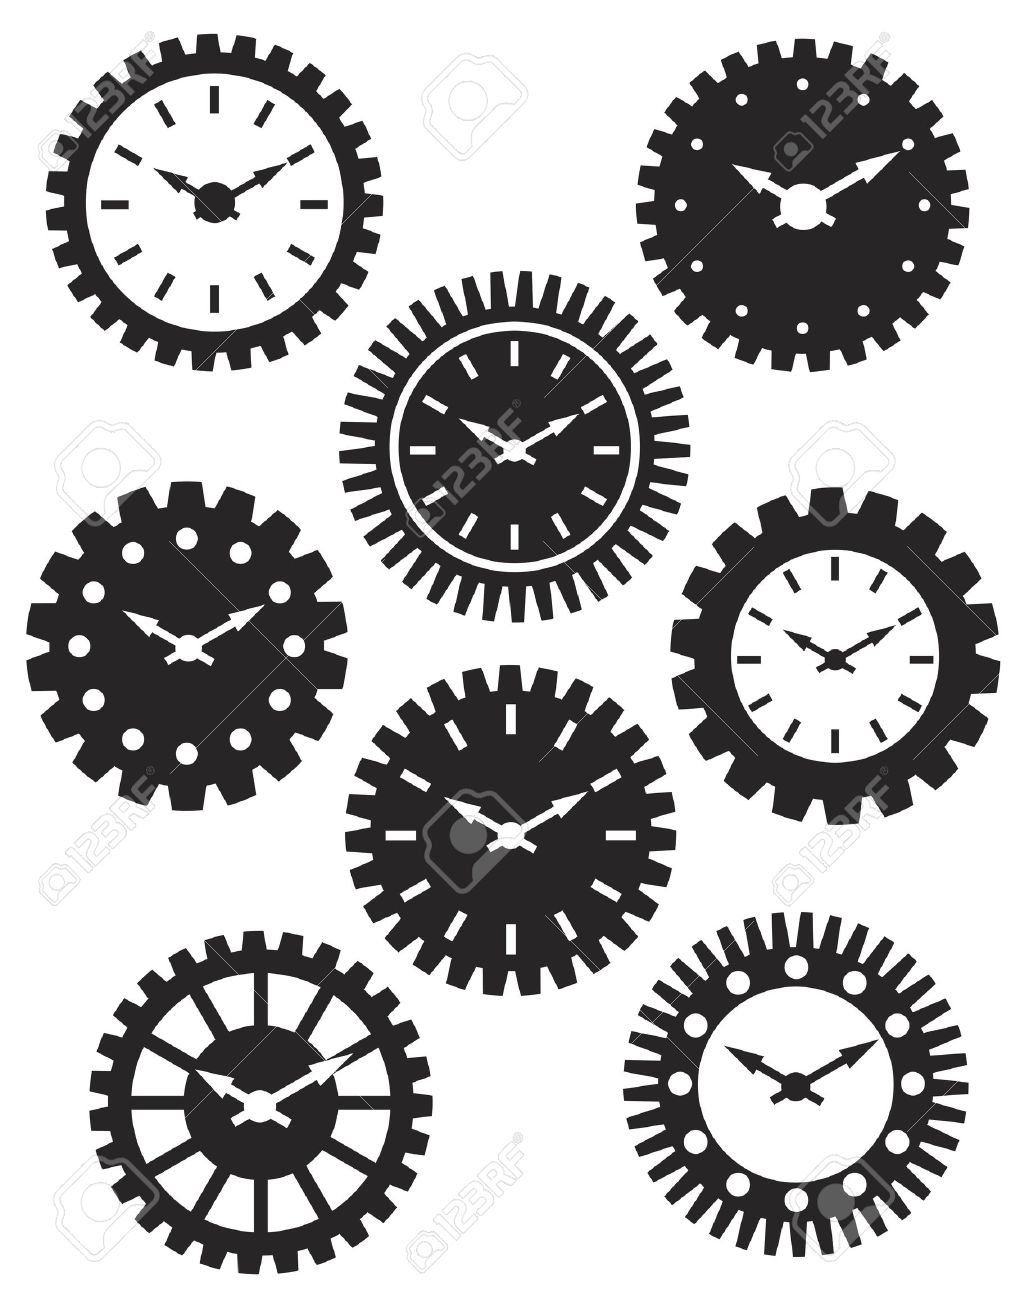 Gears clipart time clock Time Clocks in Watch Mechanical